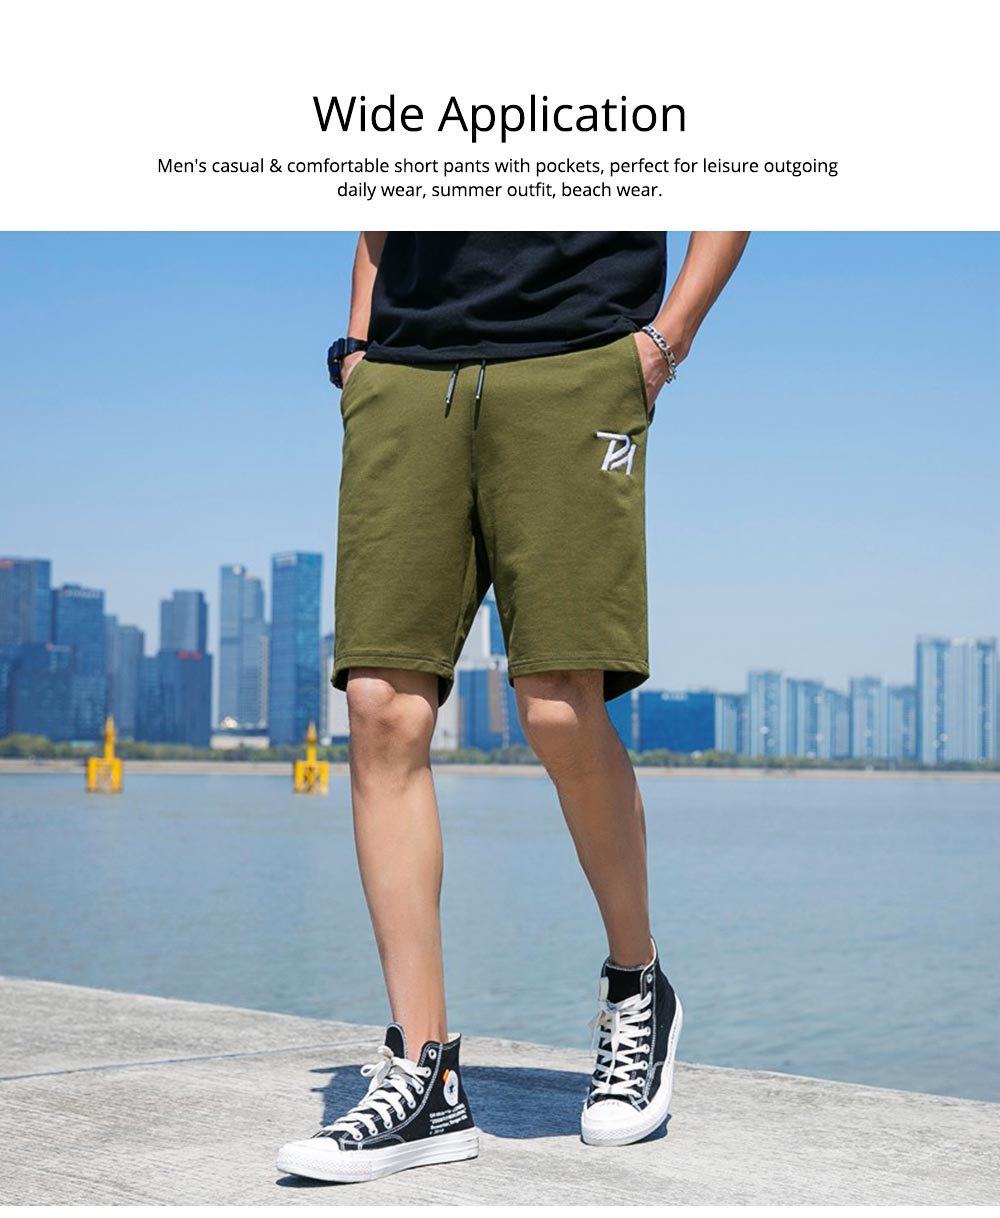 Men Summer Short Pants with Pockets, Causal Beach Shorts with Elastic Waist Drawstring, Lightweight Loose Shorts 5